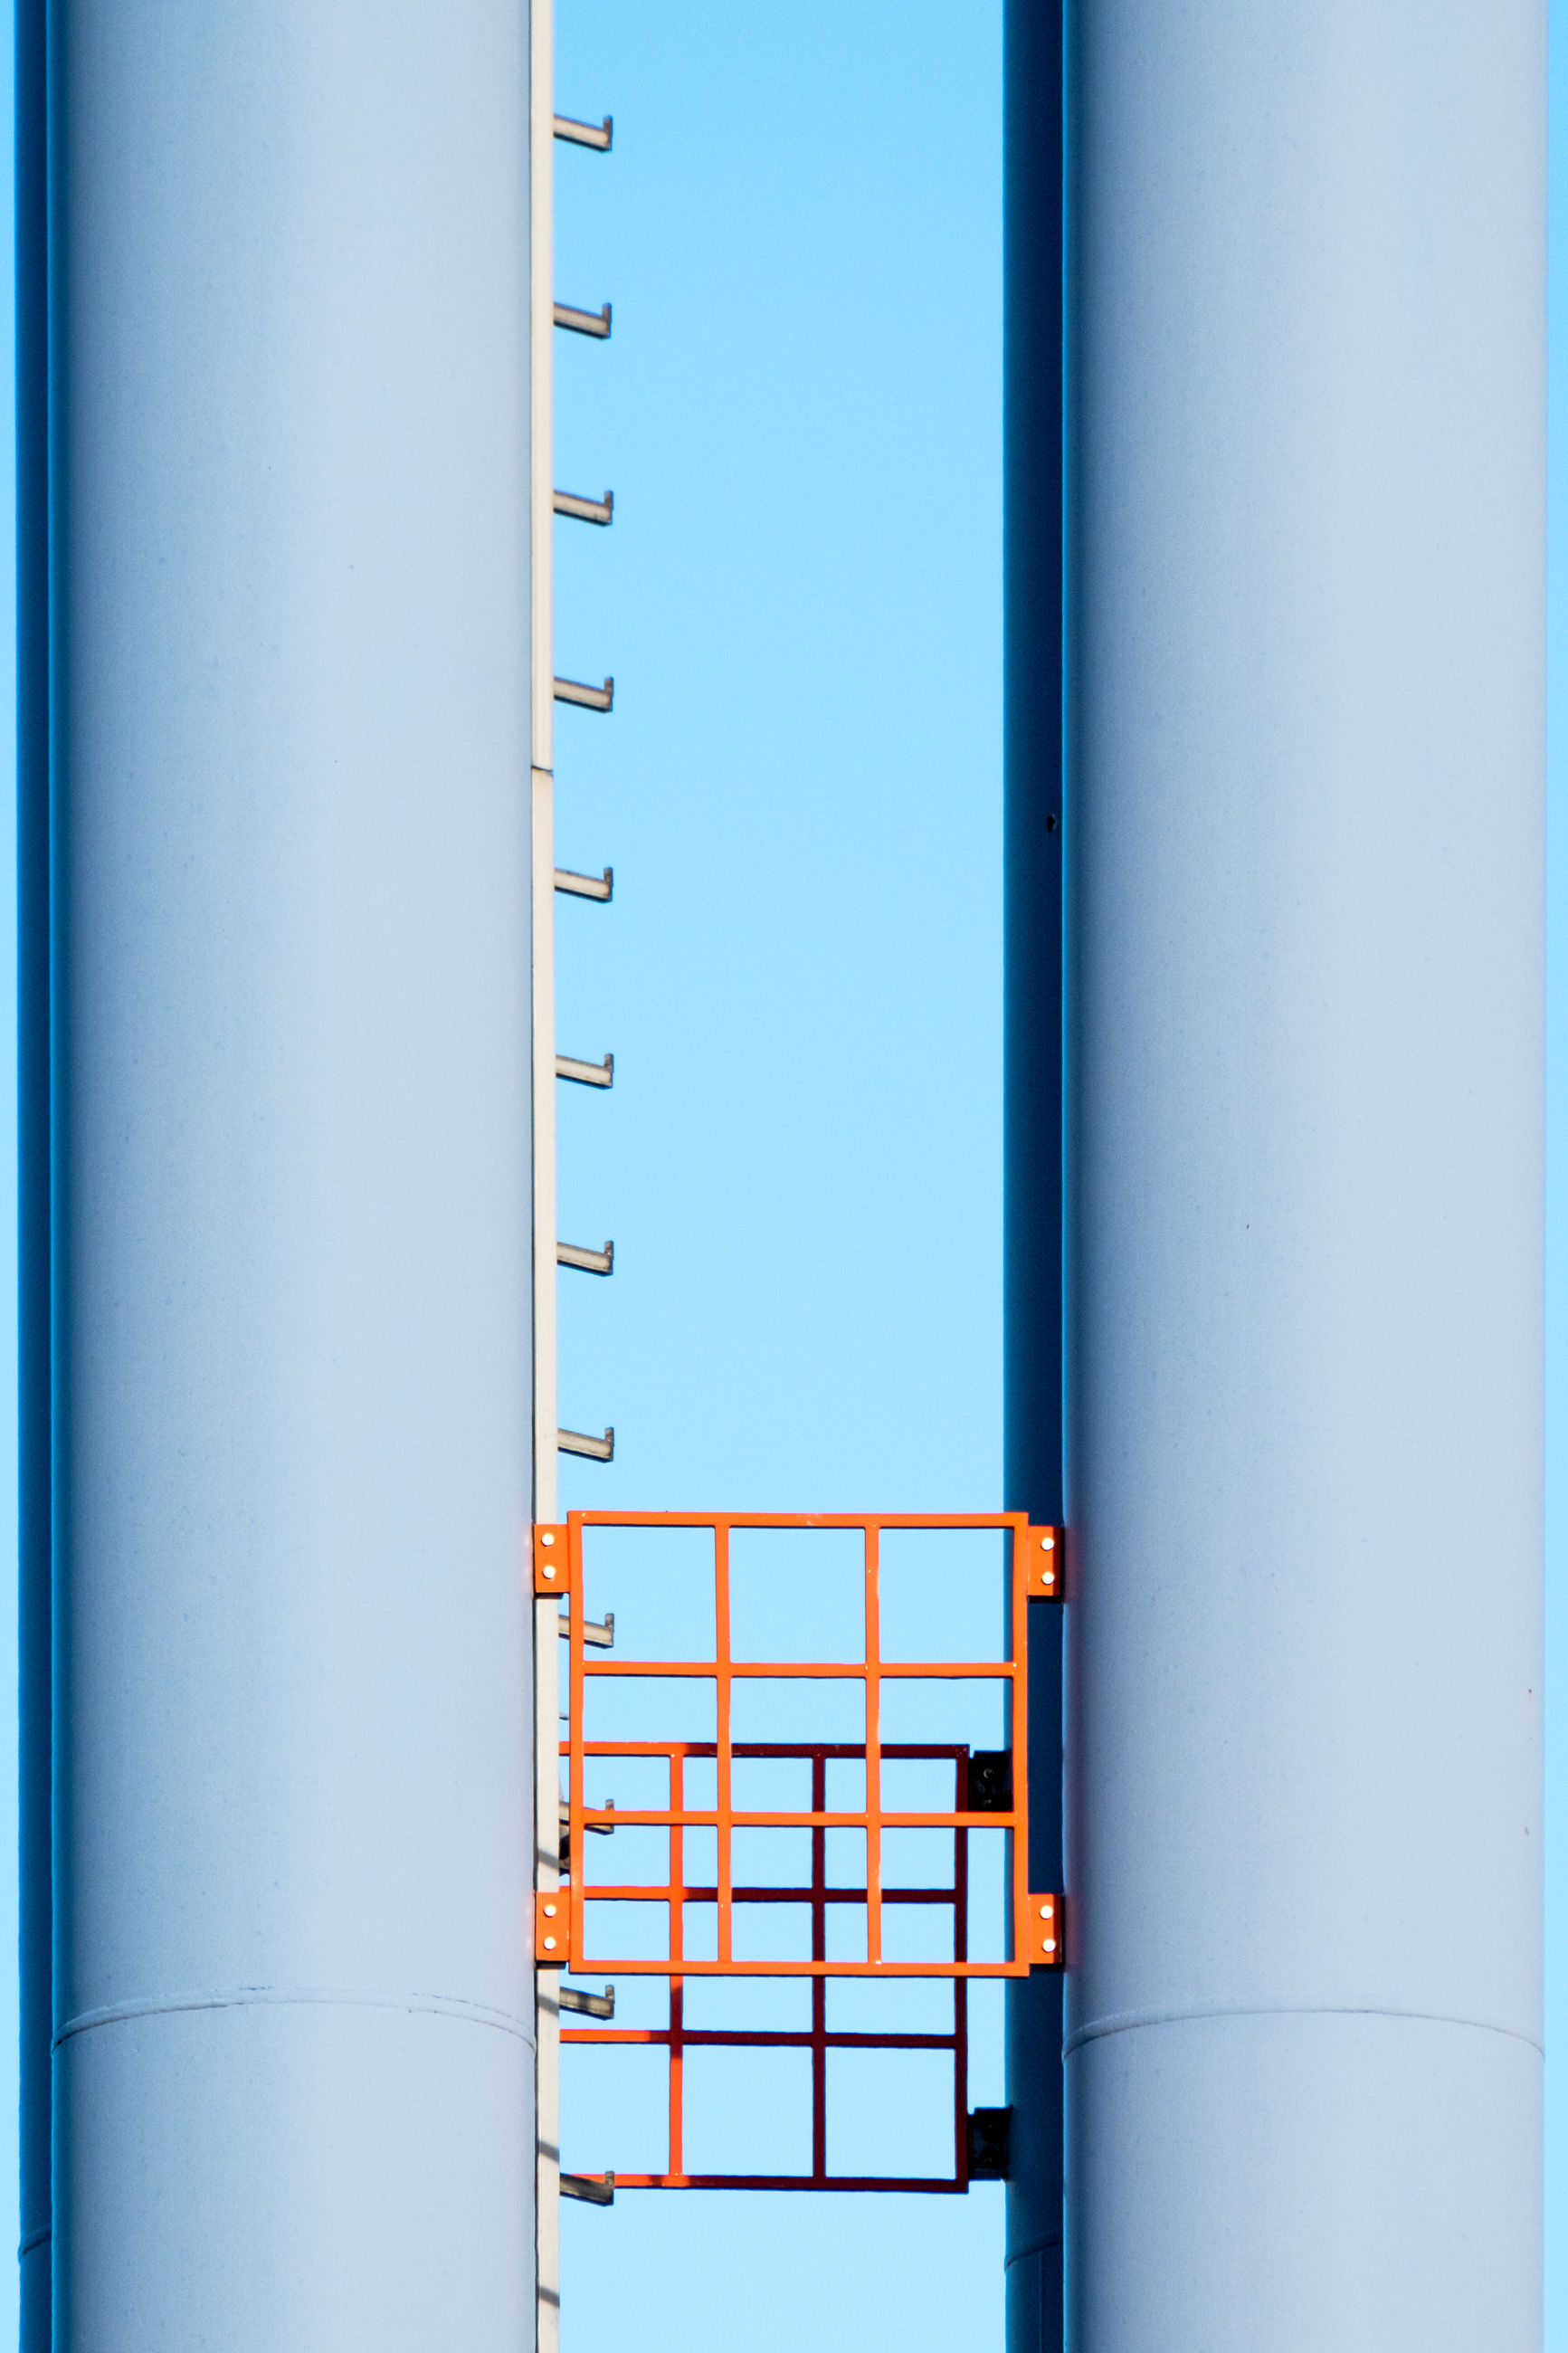 Low angle view of silos against blue sky